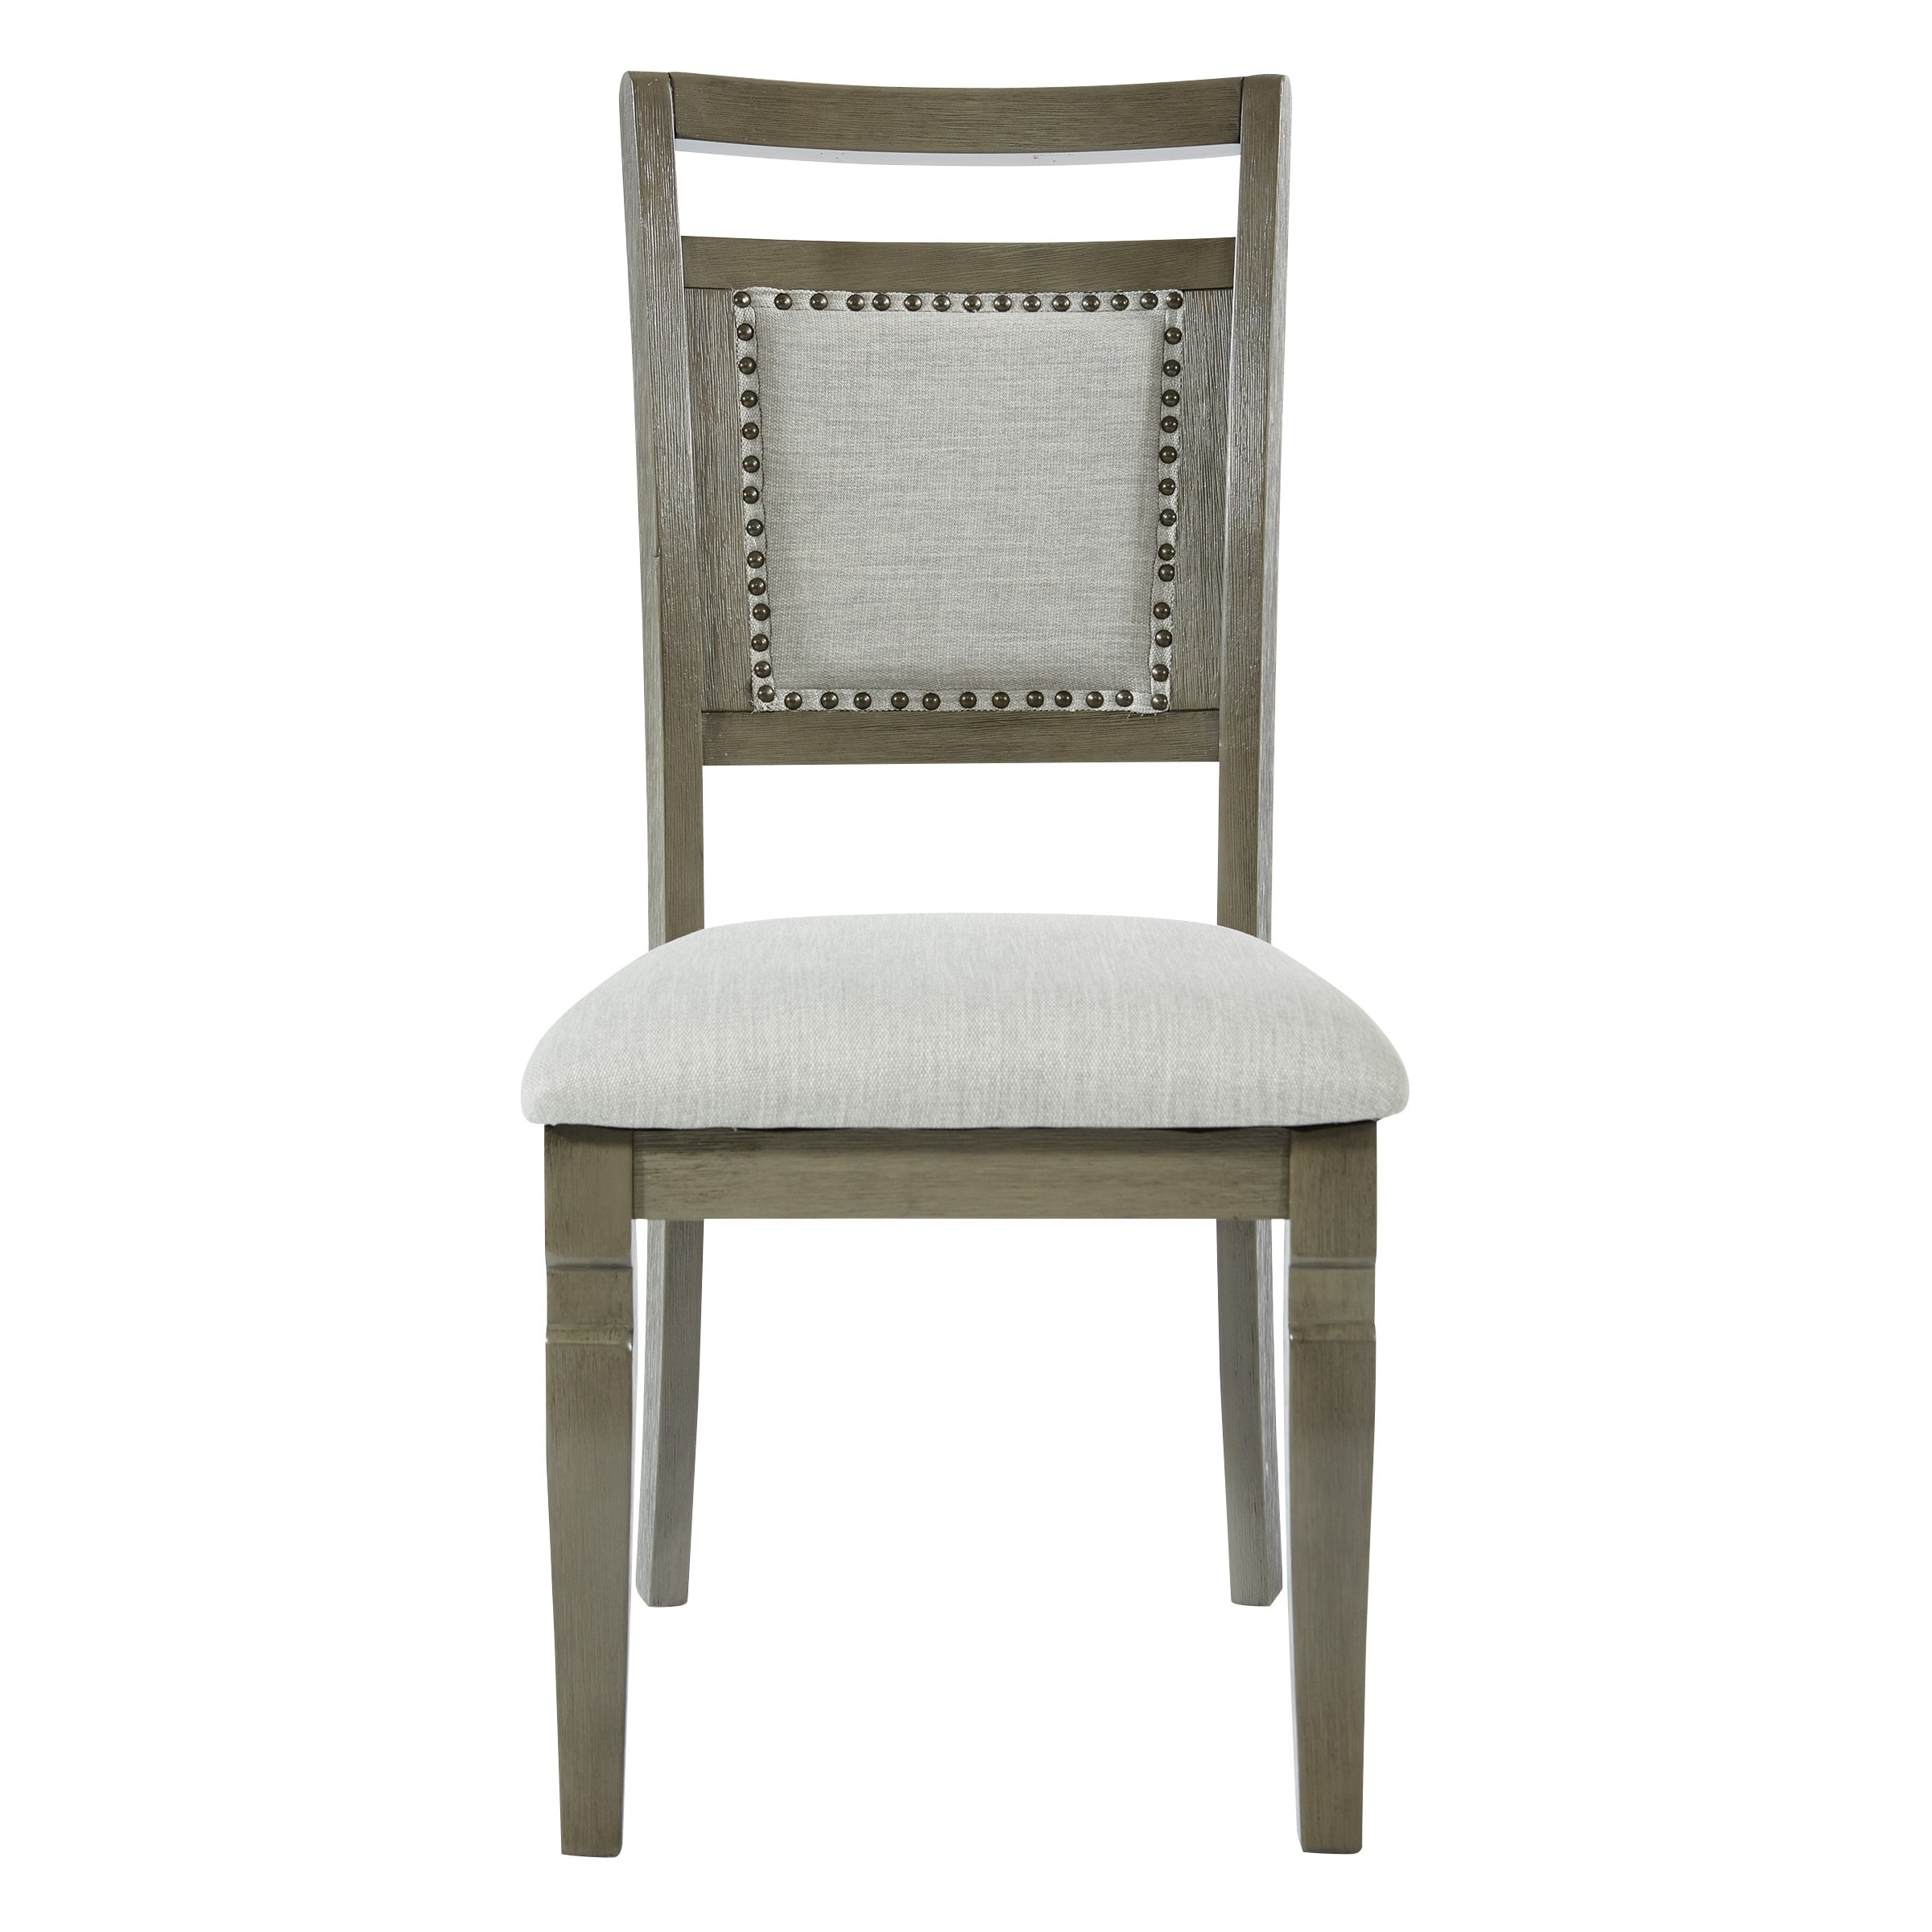 Wondrous Osp Home Furnishings Palma Dining Chair 2 Pack Machost Co Dining Chair Design Ideas Machostcouk